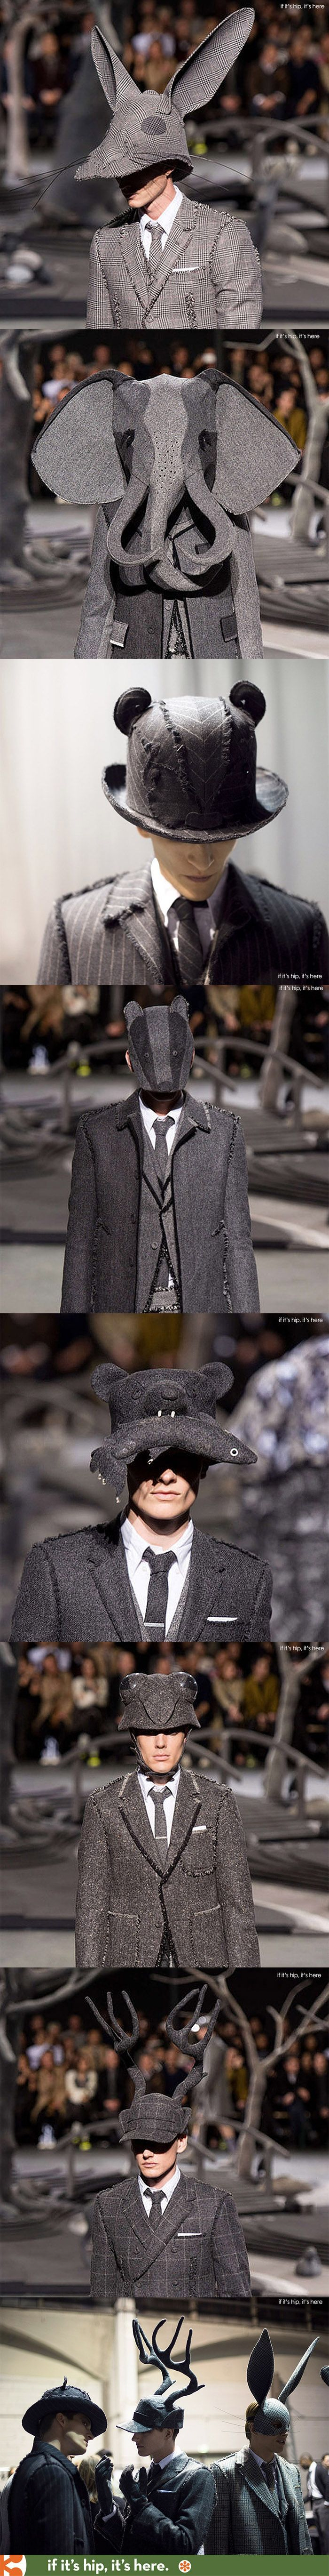 Stephen Jones | http://www.stephenjonesmillinery.com/ | Thom Browne 2014 Fall Winter Collection